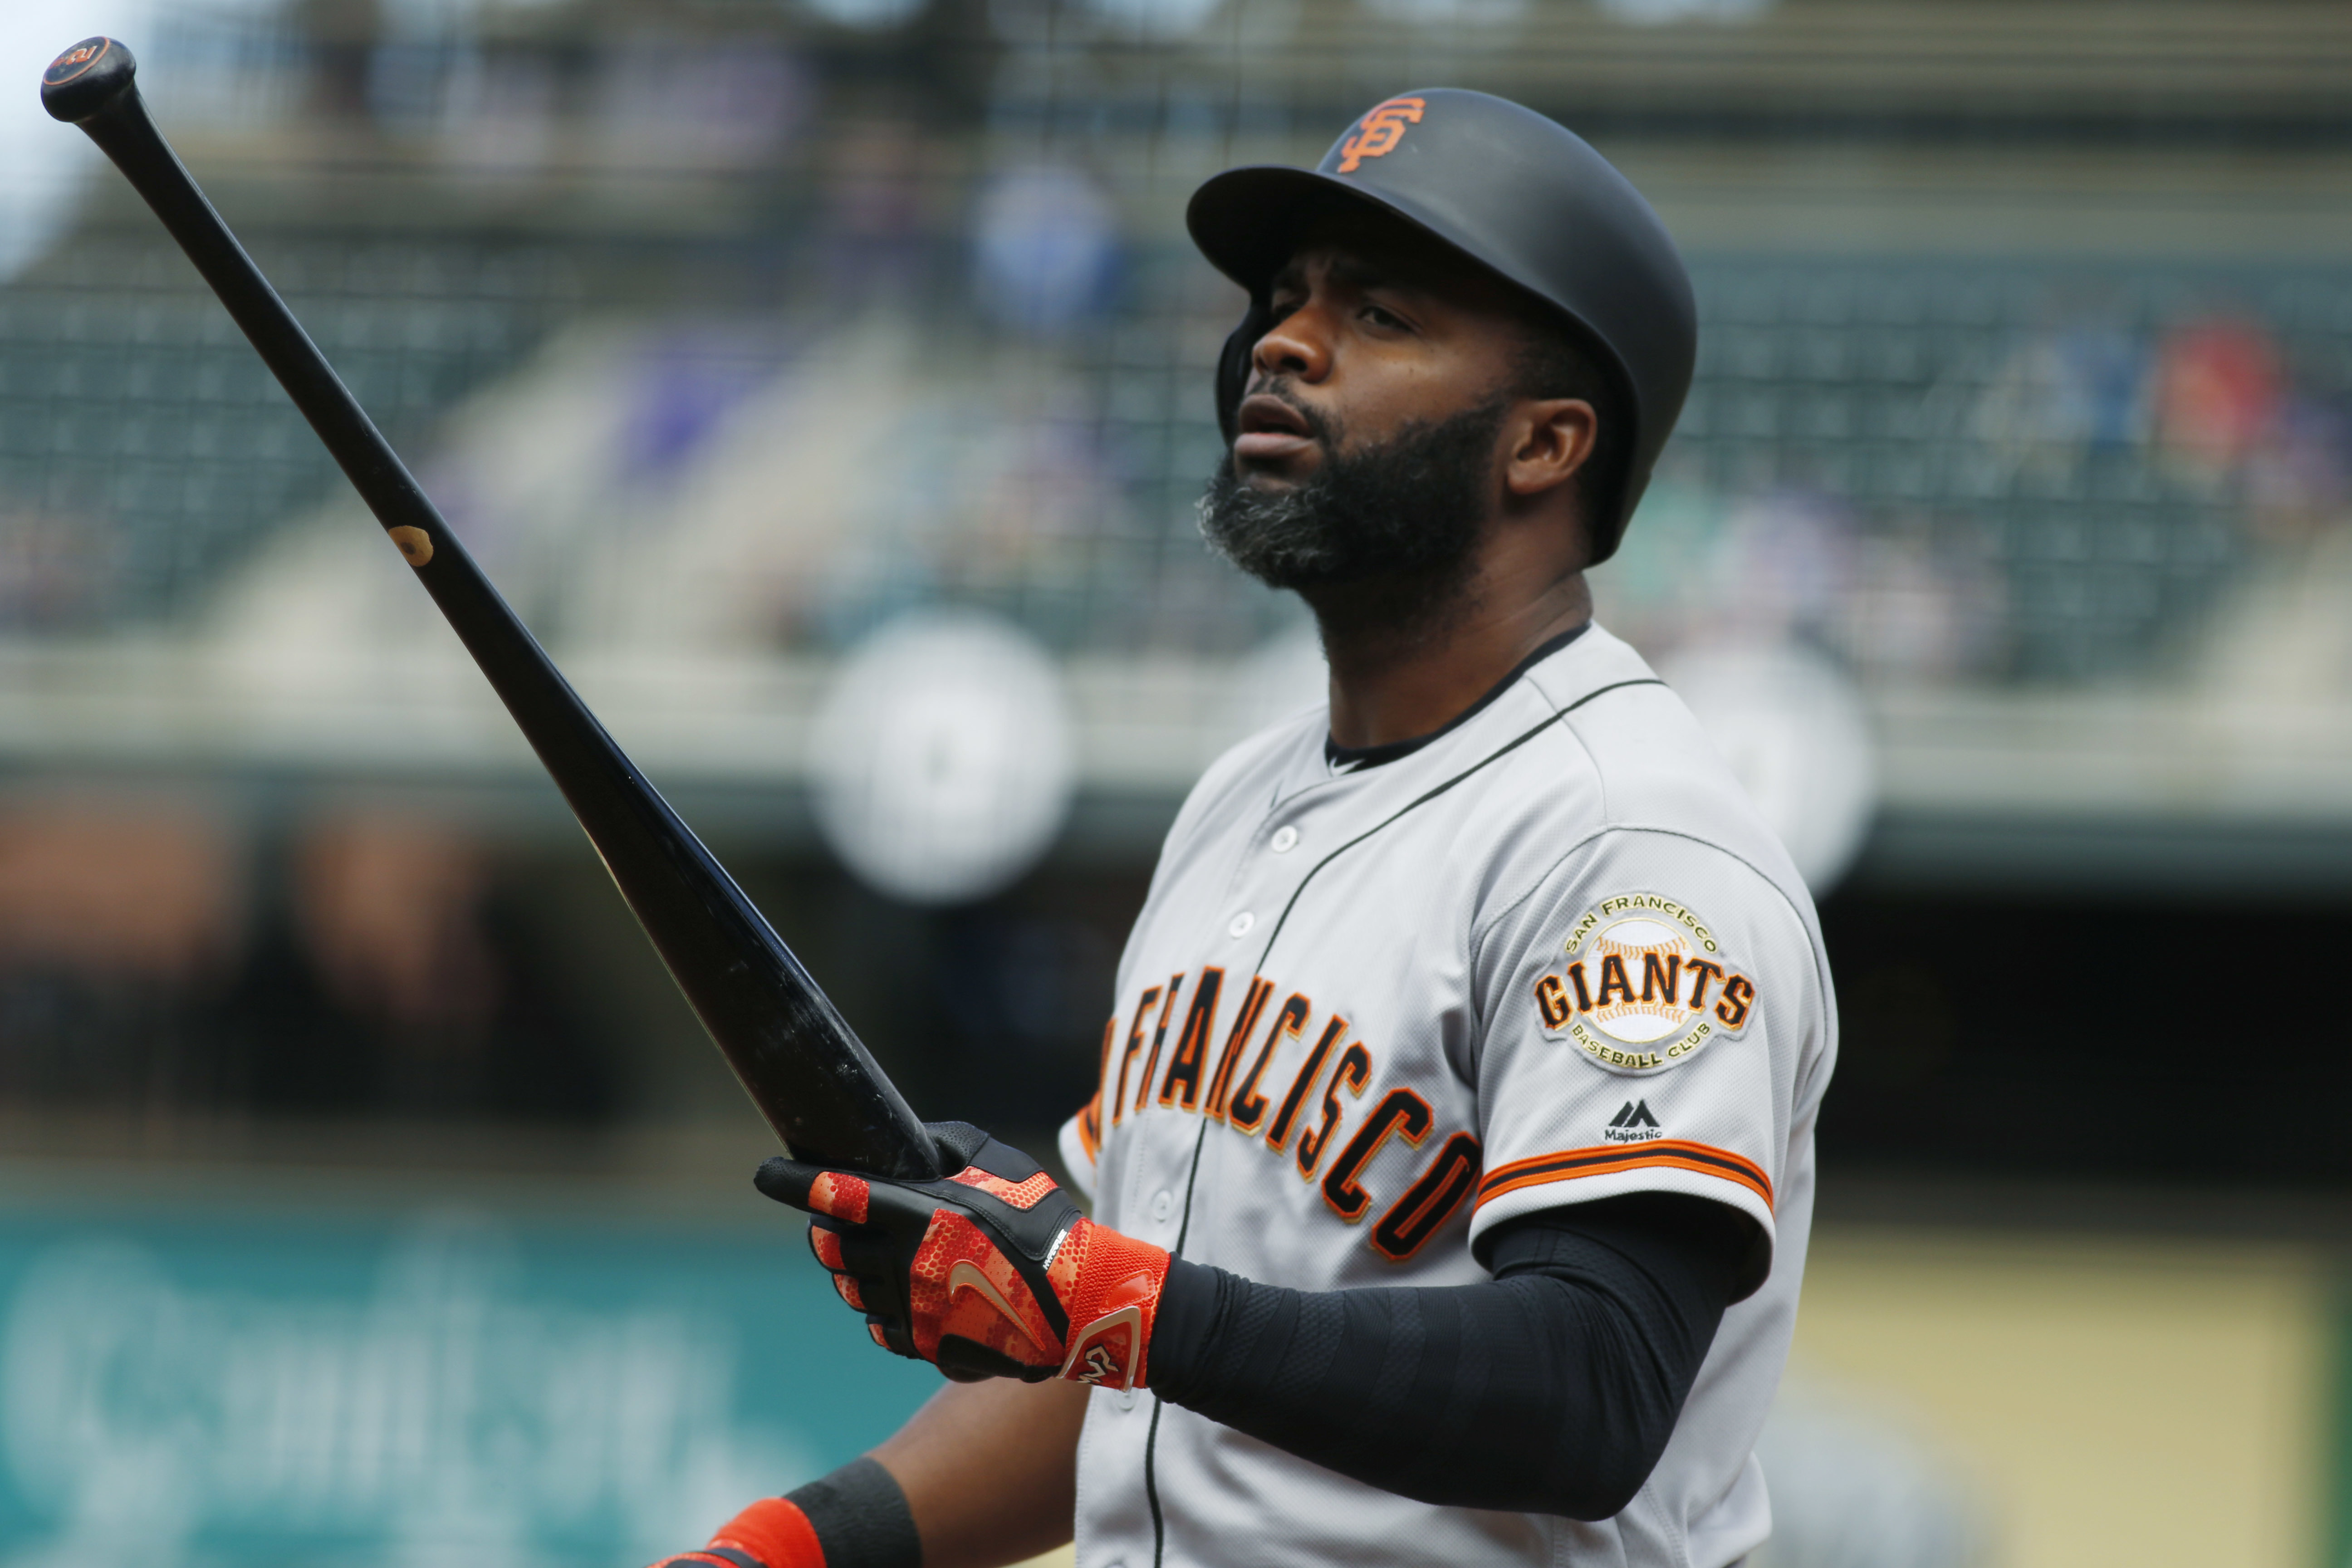 San Francisco Giants' Denard Span reacts after striking out against Colorado Rockies starting pitcher Jorge De La Rosa in the first inning of a baseball game Thursday, April 14, 2016, in Denver. (AP Photo/David Zalubowski)